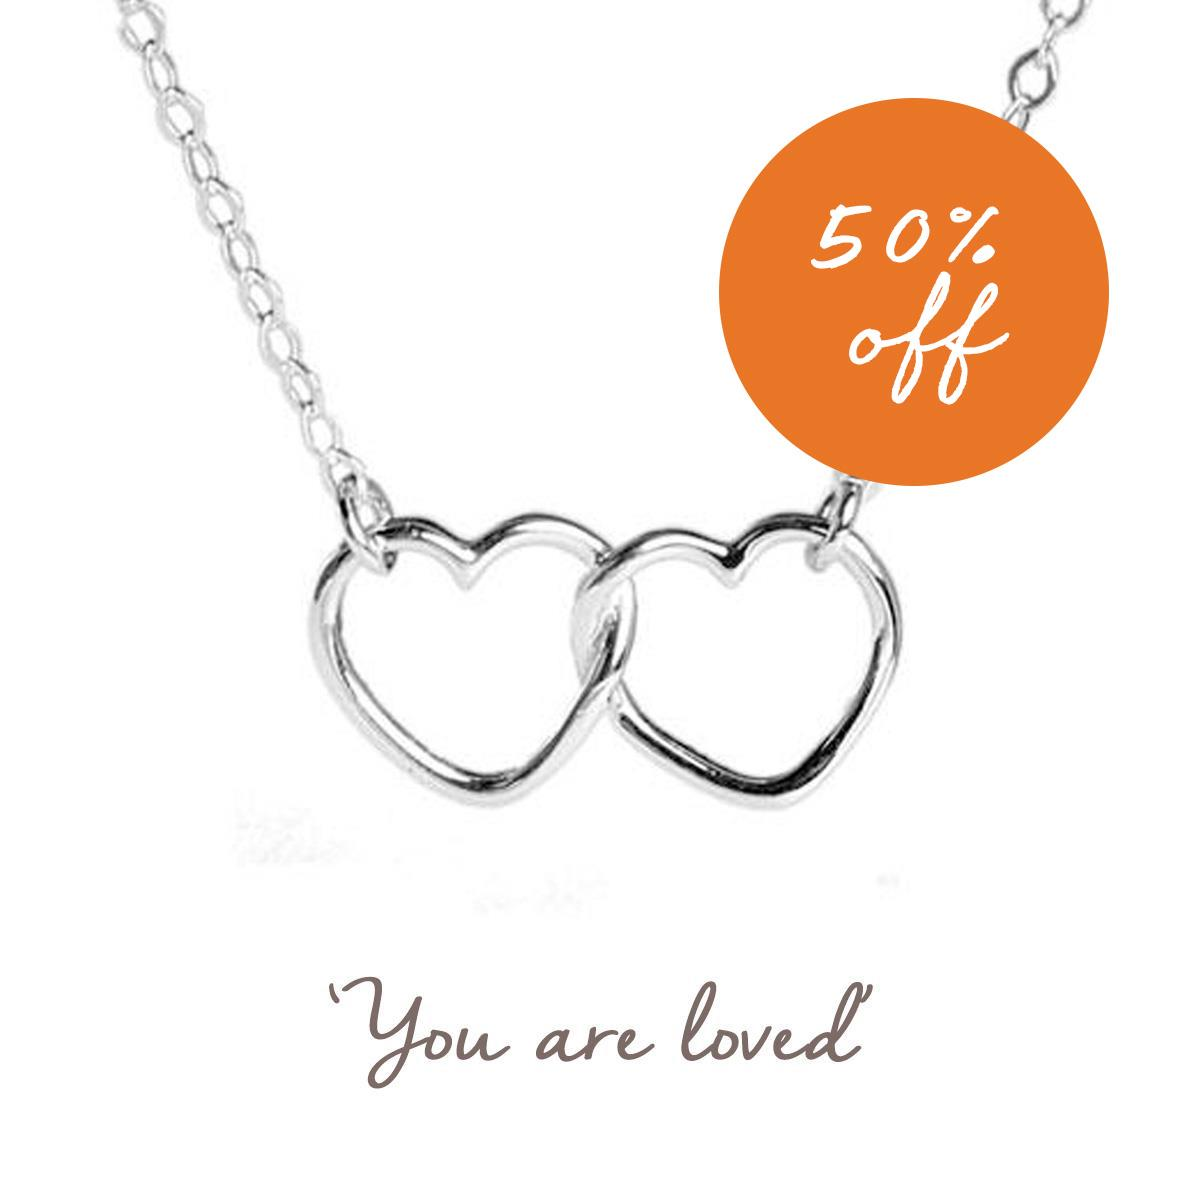 Linked Hearts Necklace | Love | Romantic Valentine's Day Gift